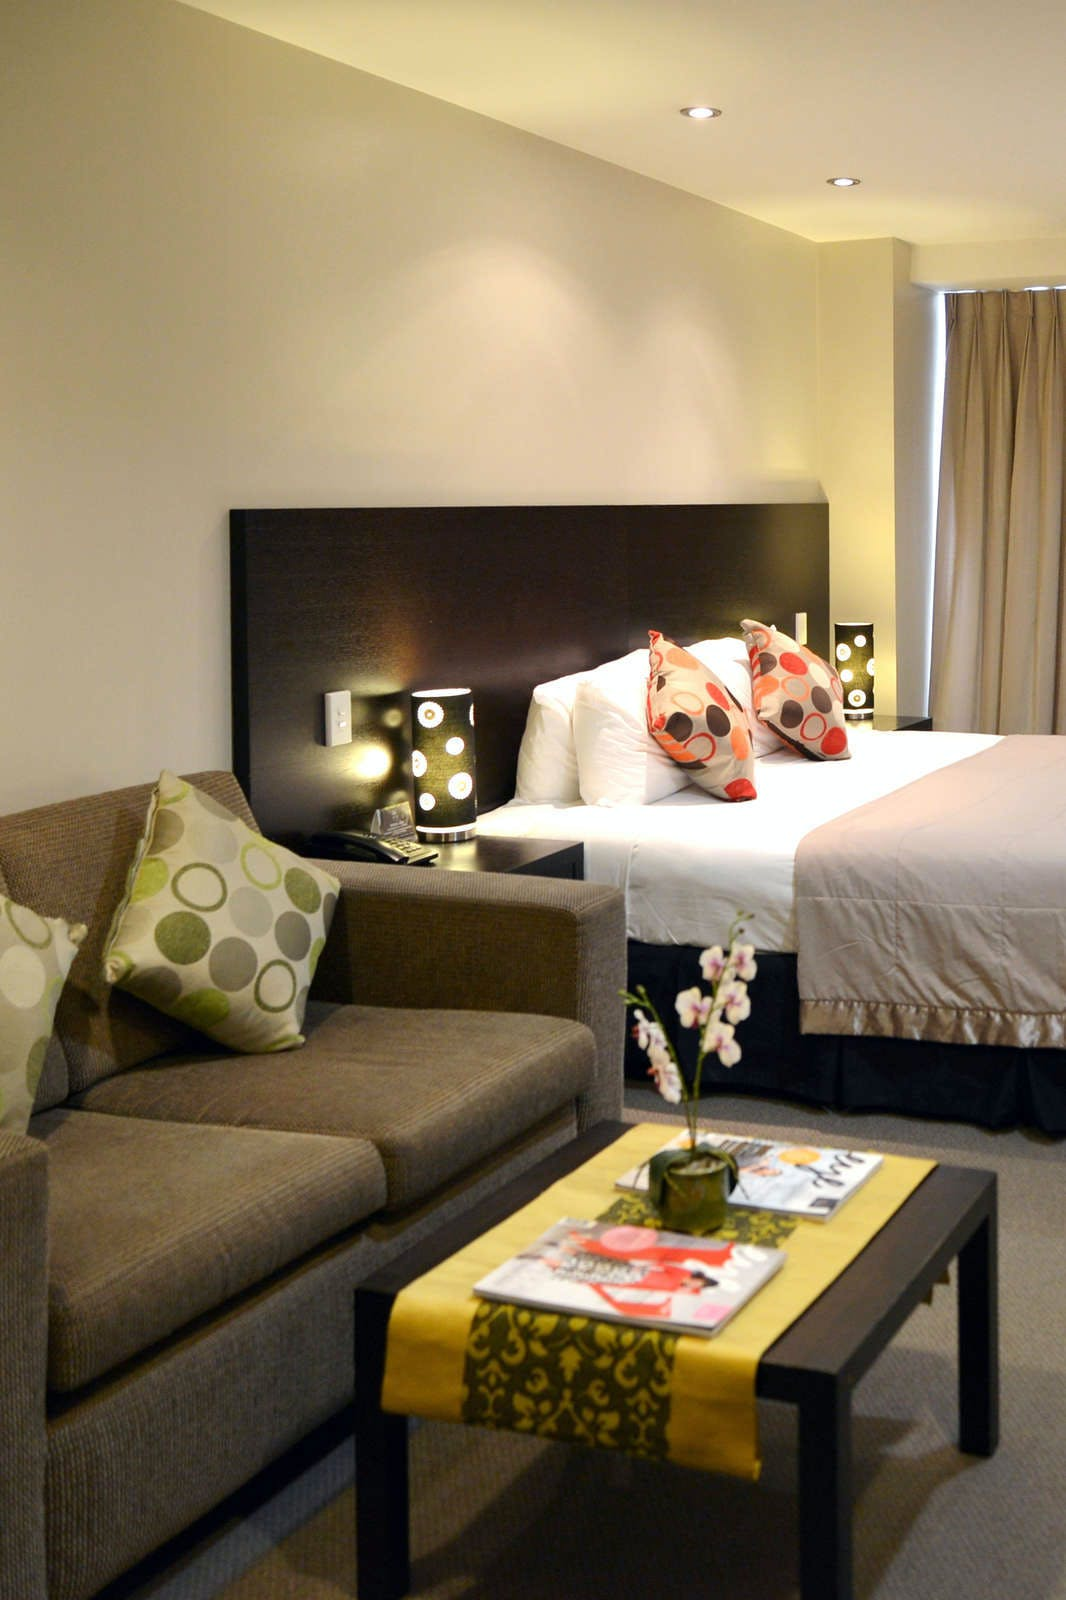 Auckland City Hotel - Hobson St